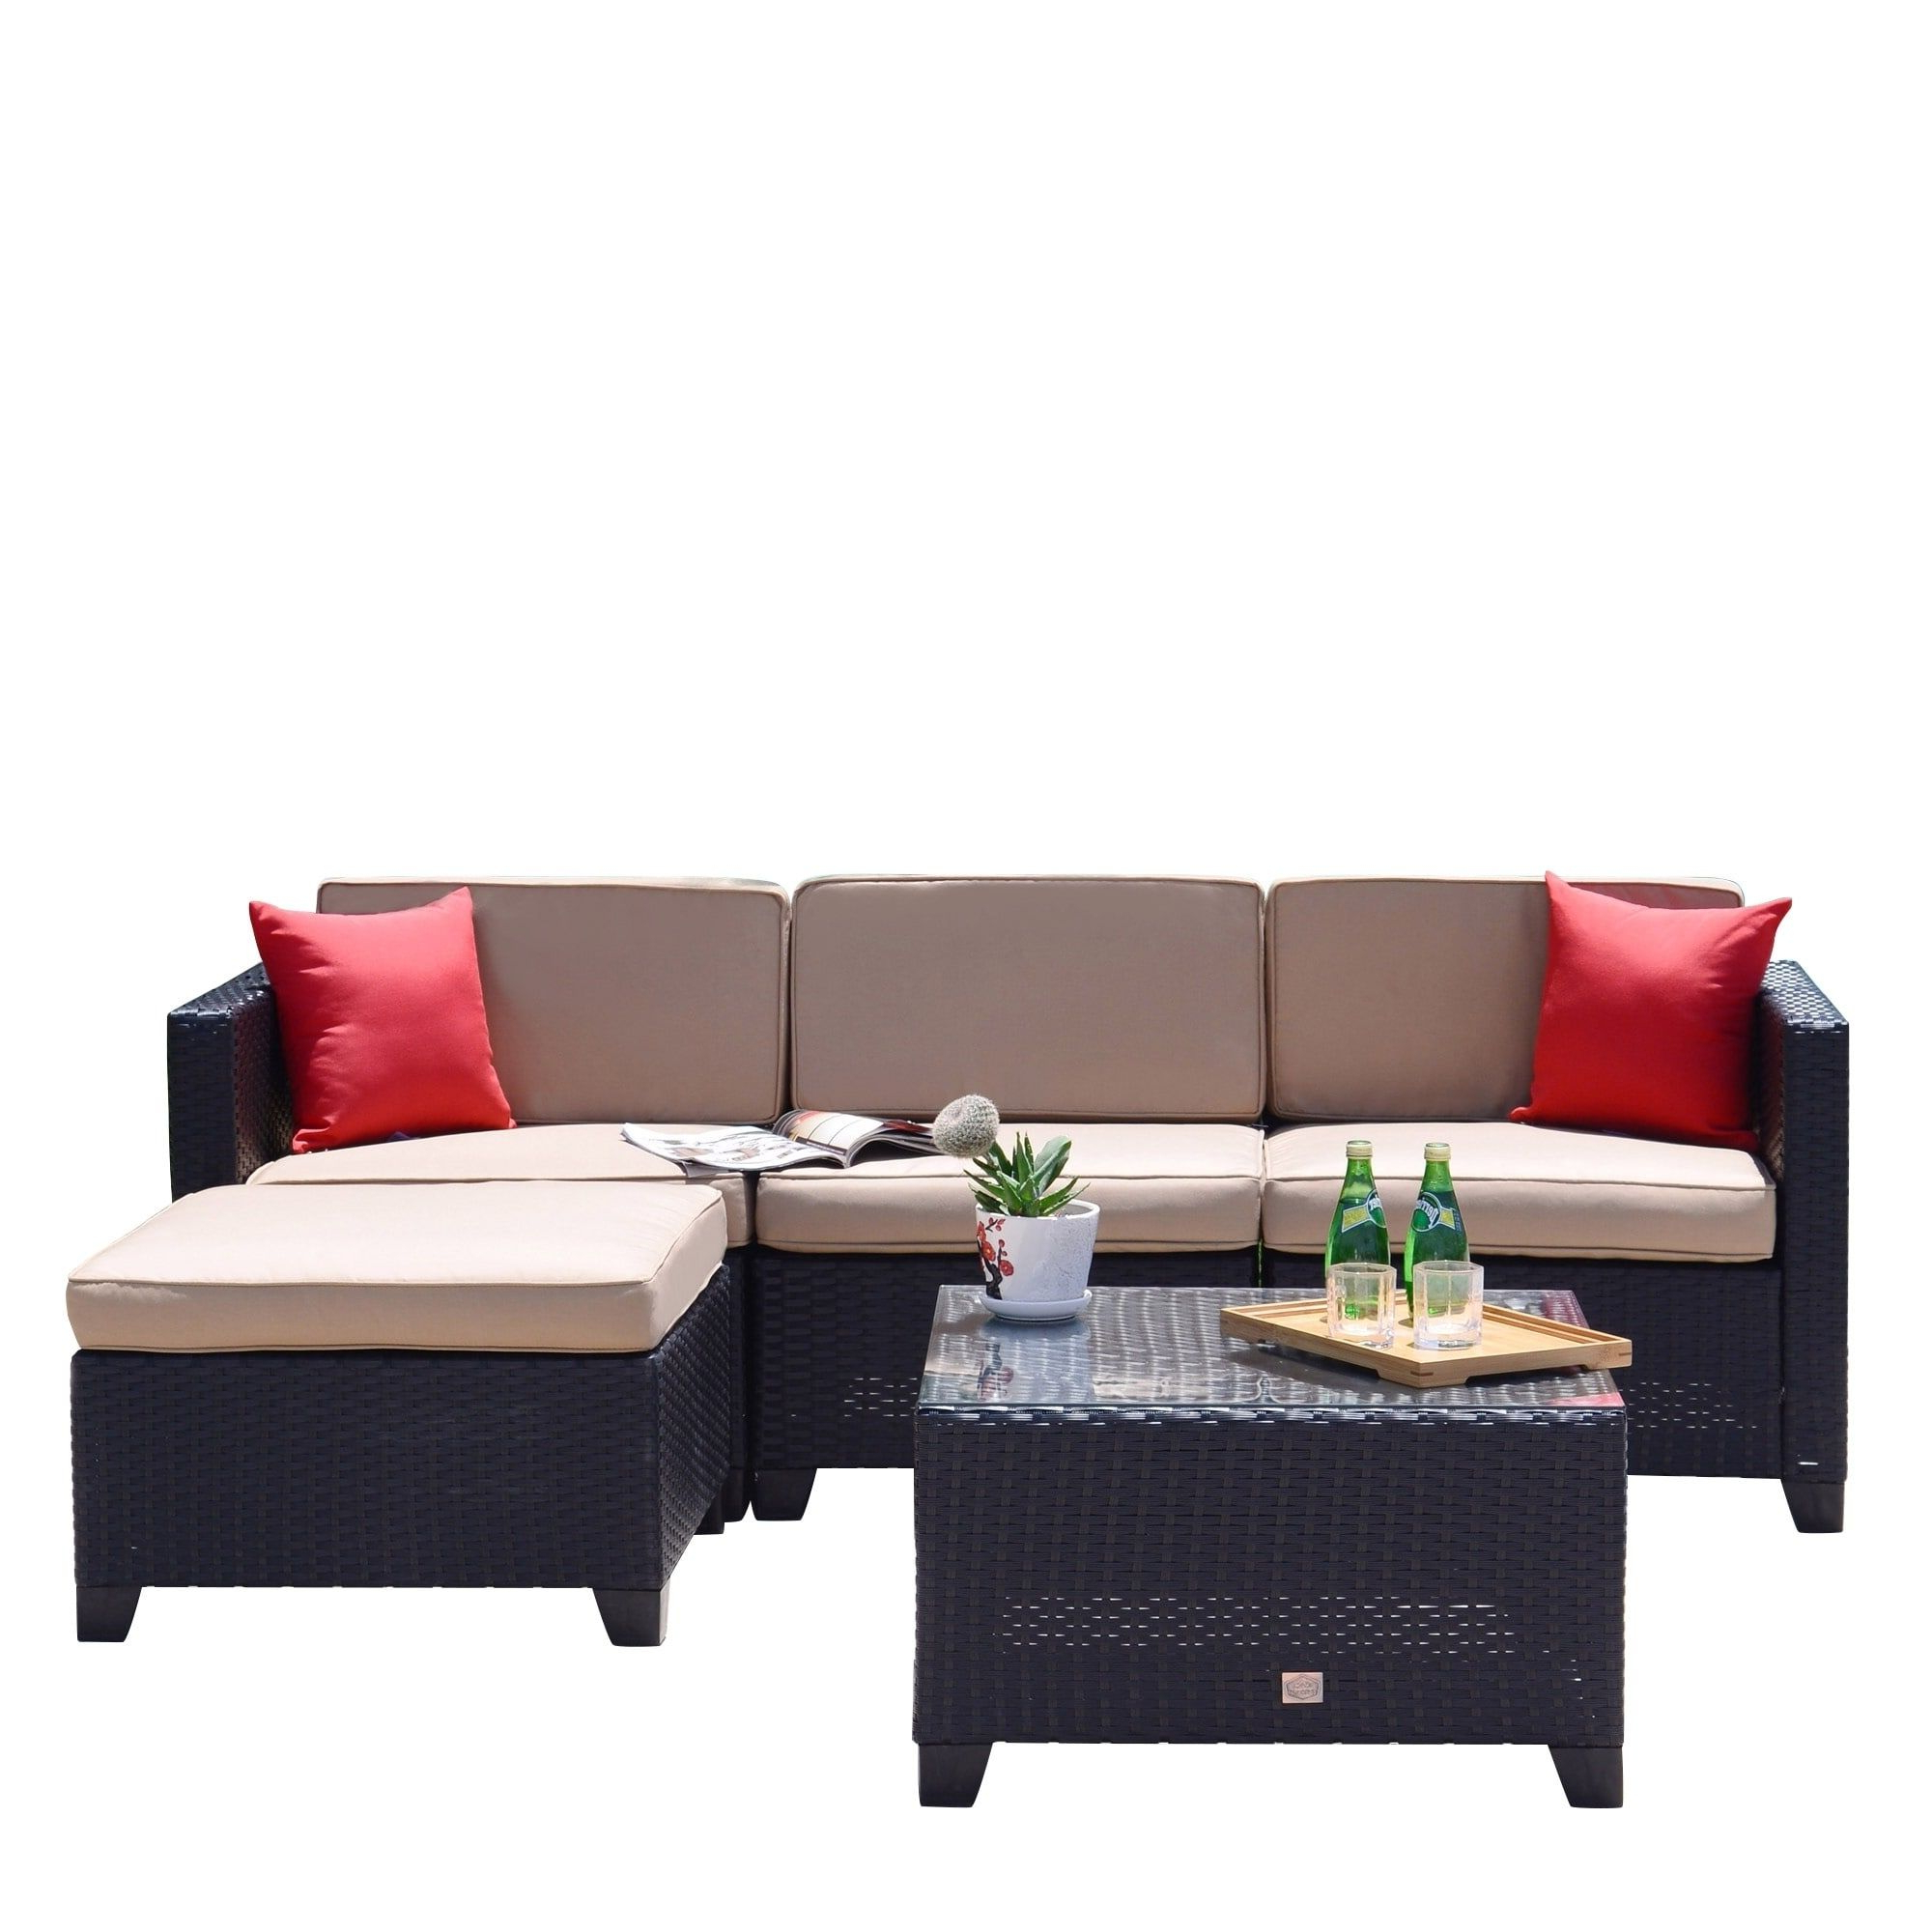 5 Pc Rattan Sofa Set Cushioned Sectional Outdoor Garden With Regard To Most Recent Furst Patio Sofas With Cushion (View 10 of 20)